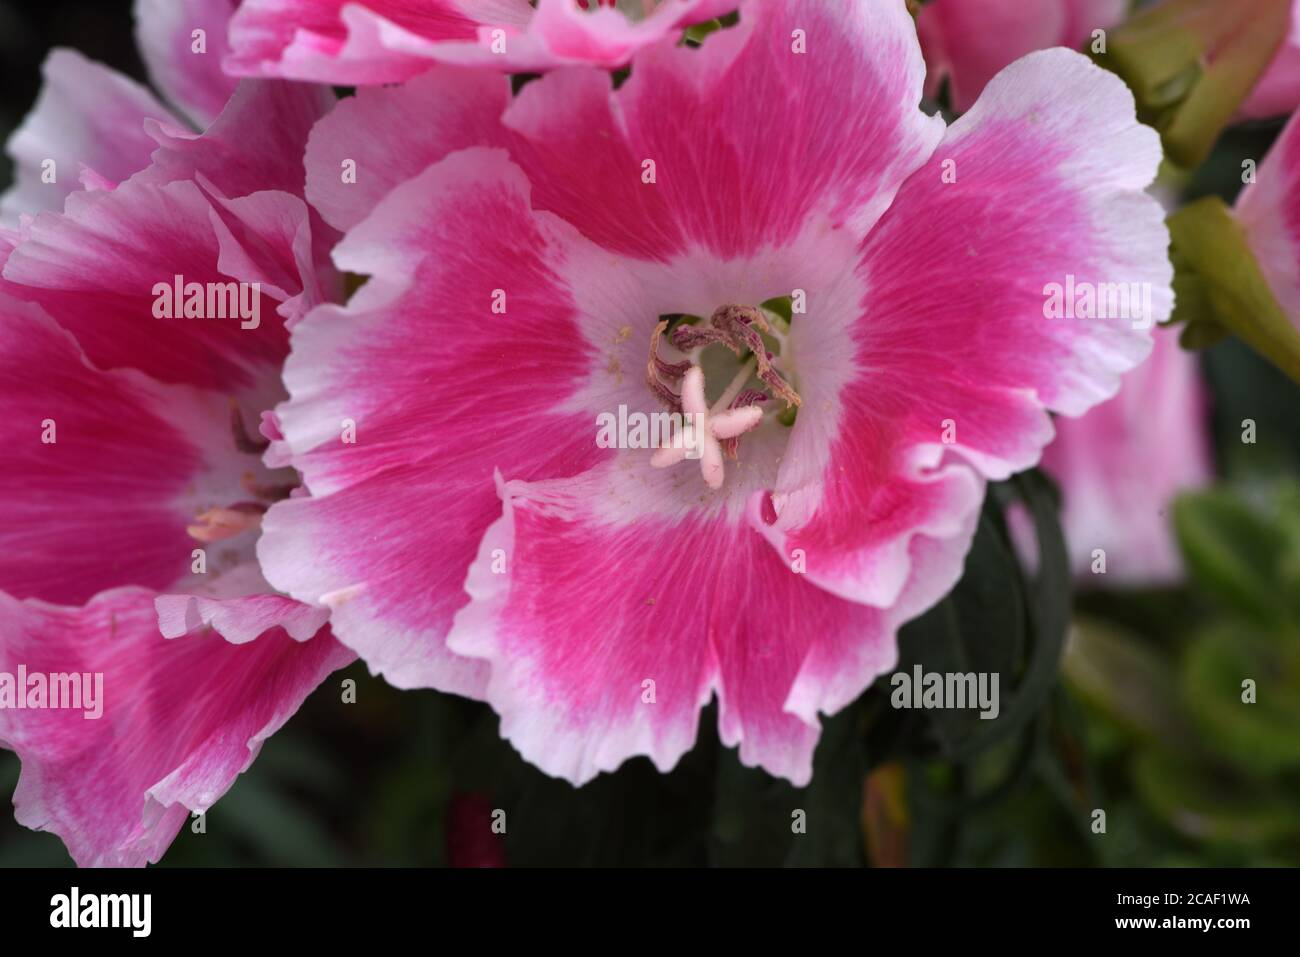 Clarkia High Resolution Stock Photography And Images Alamy